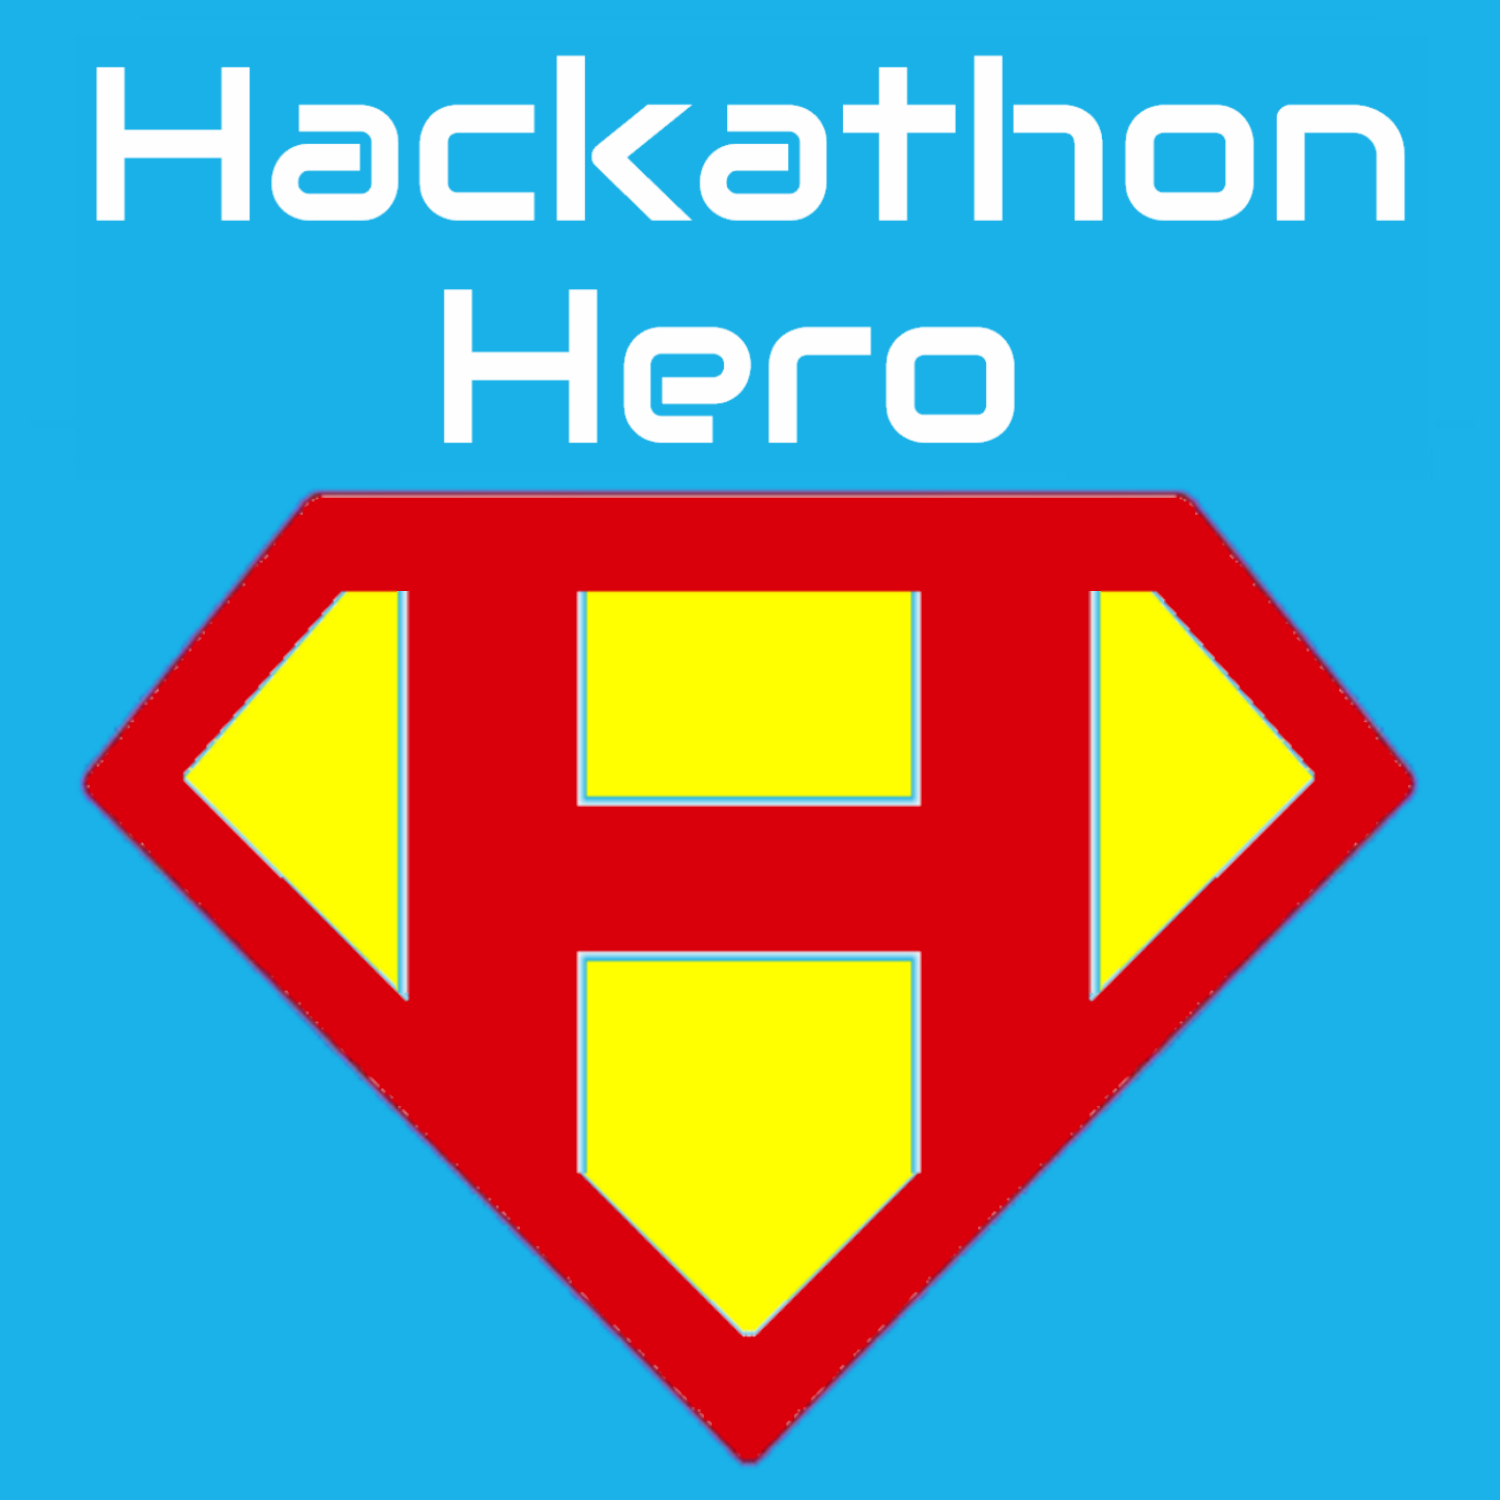 List of Hackathons